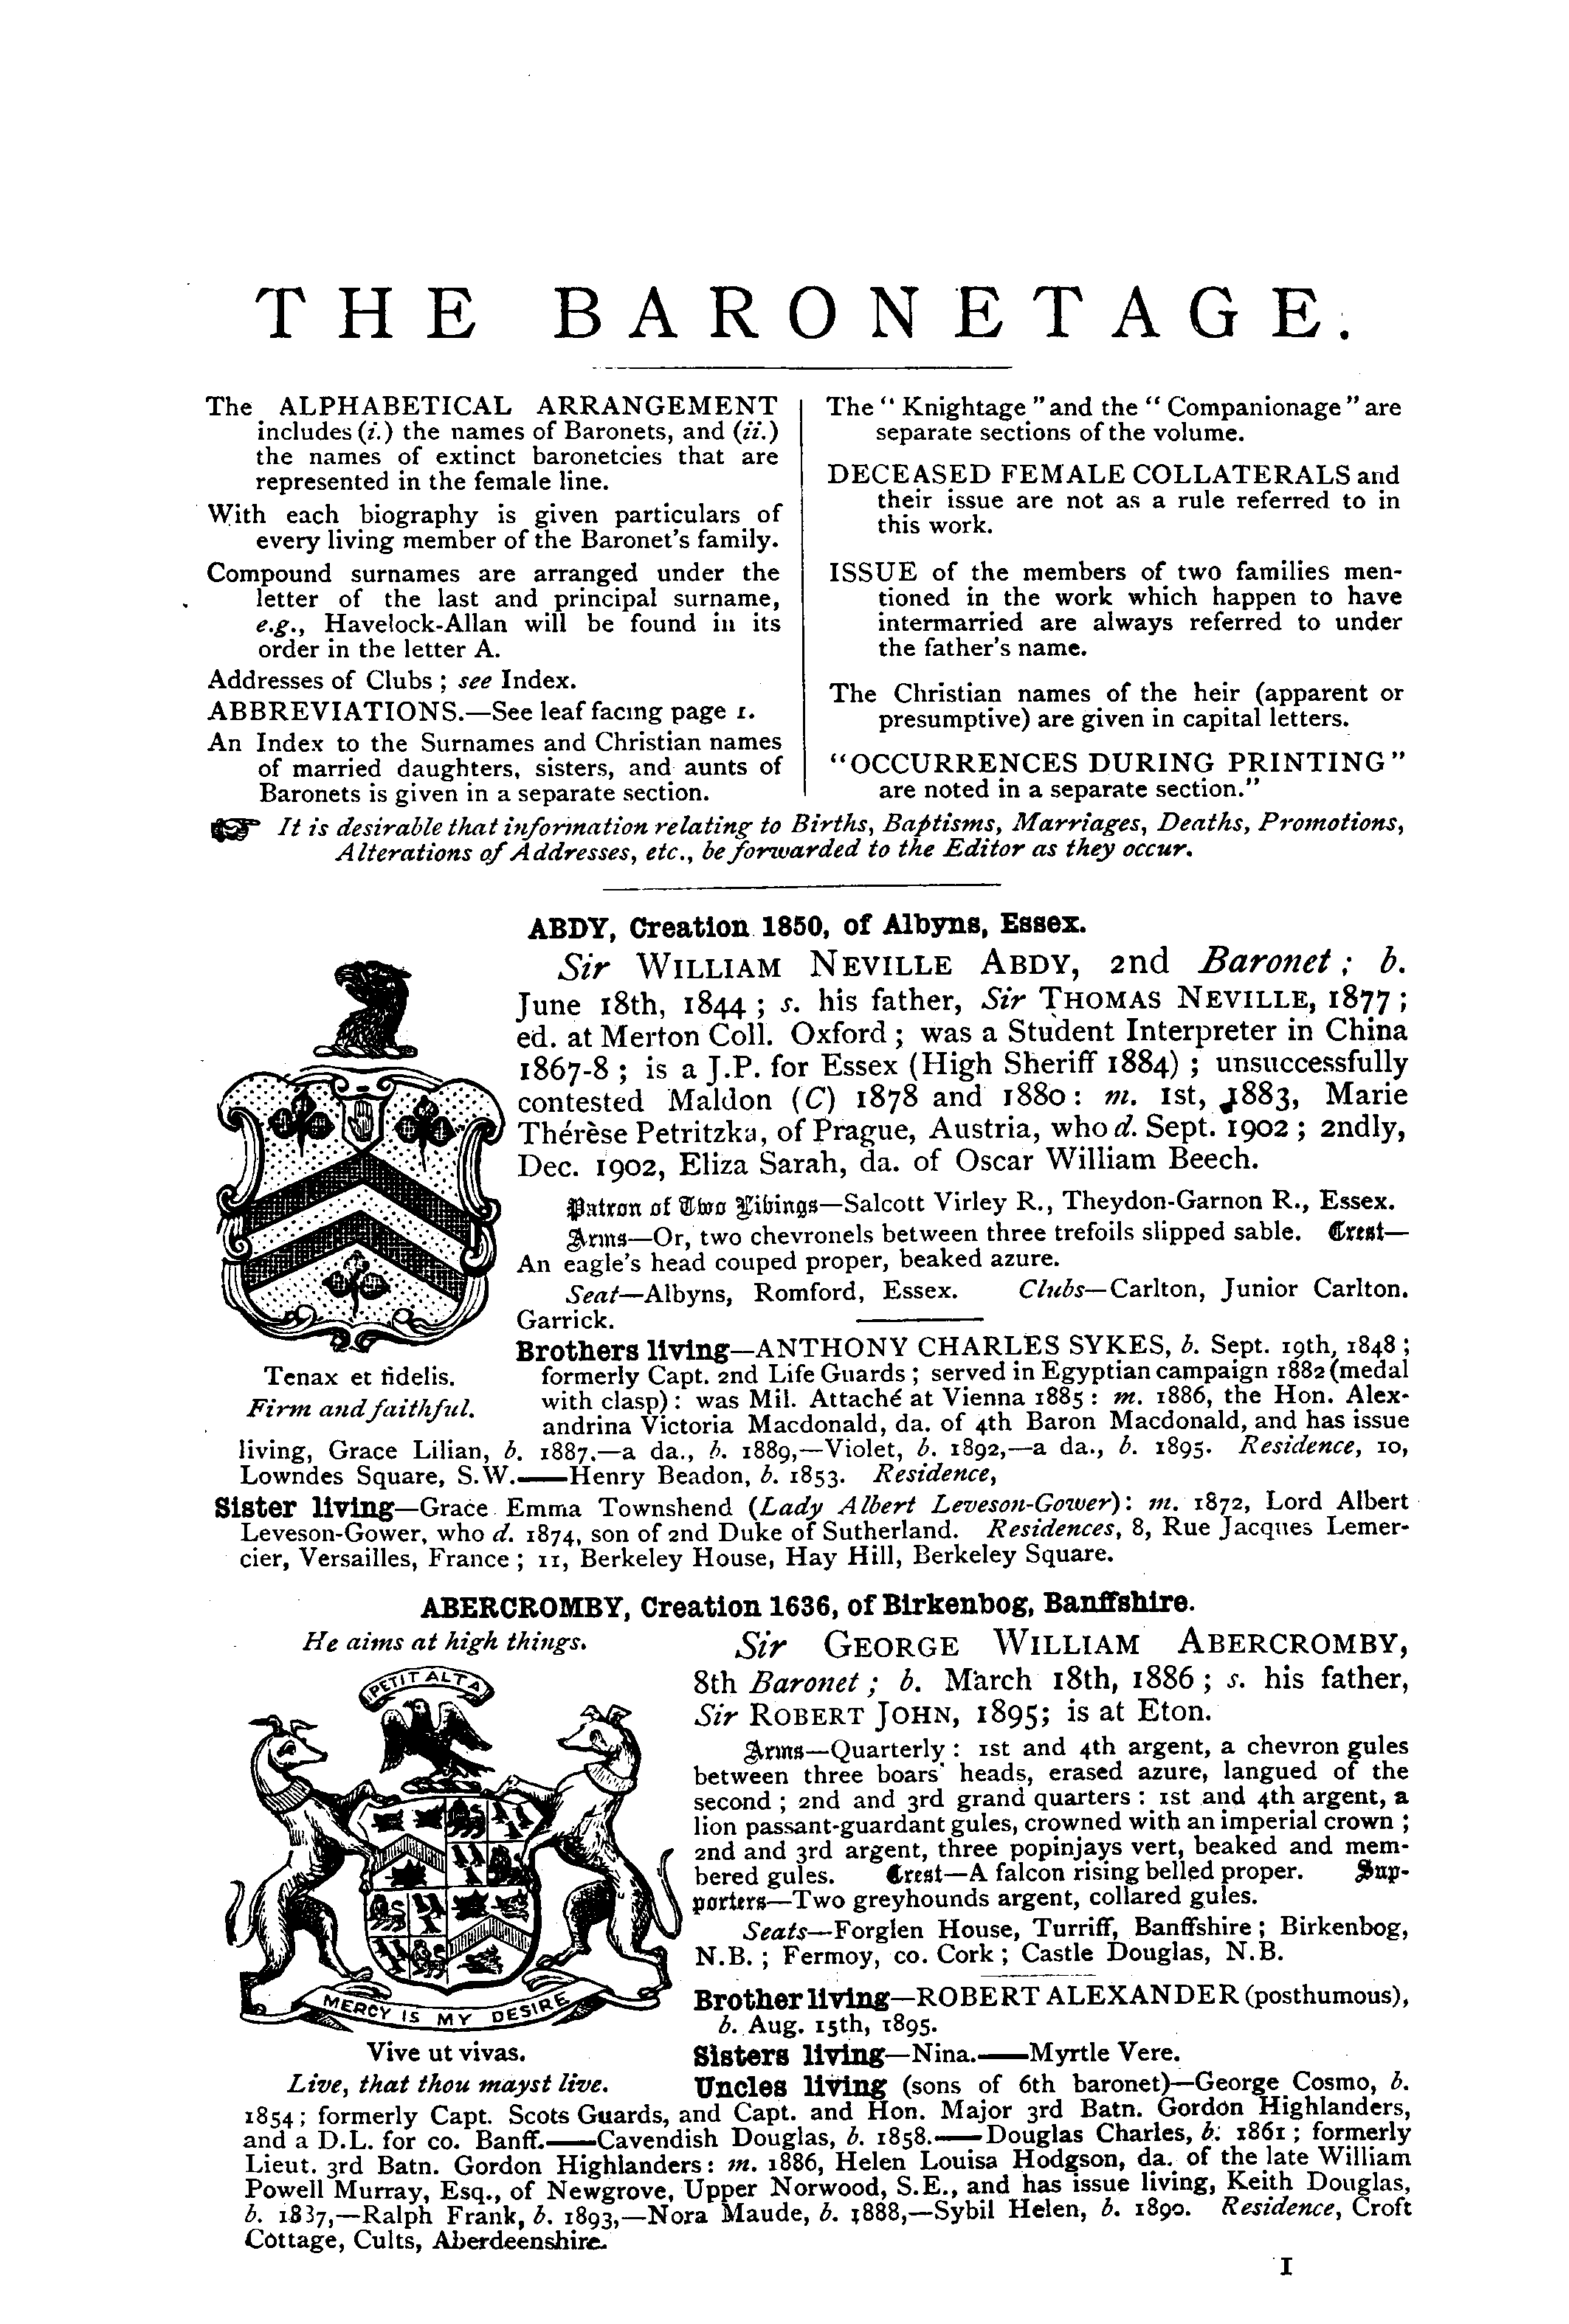 Debrett's Peerage, Baronetage, Knightage and Companionage, 1904 page 1 - click to open larger version in a new window